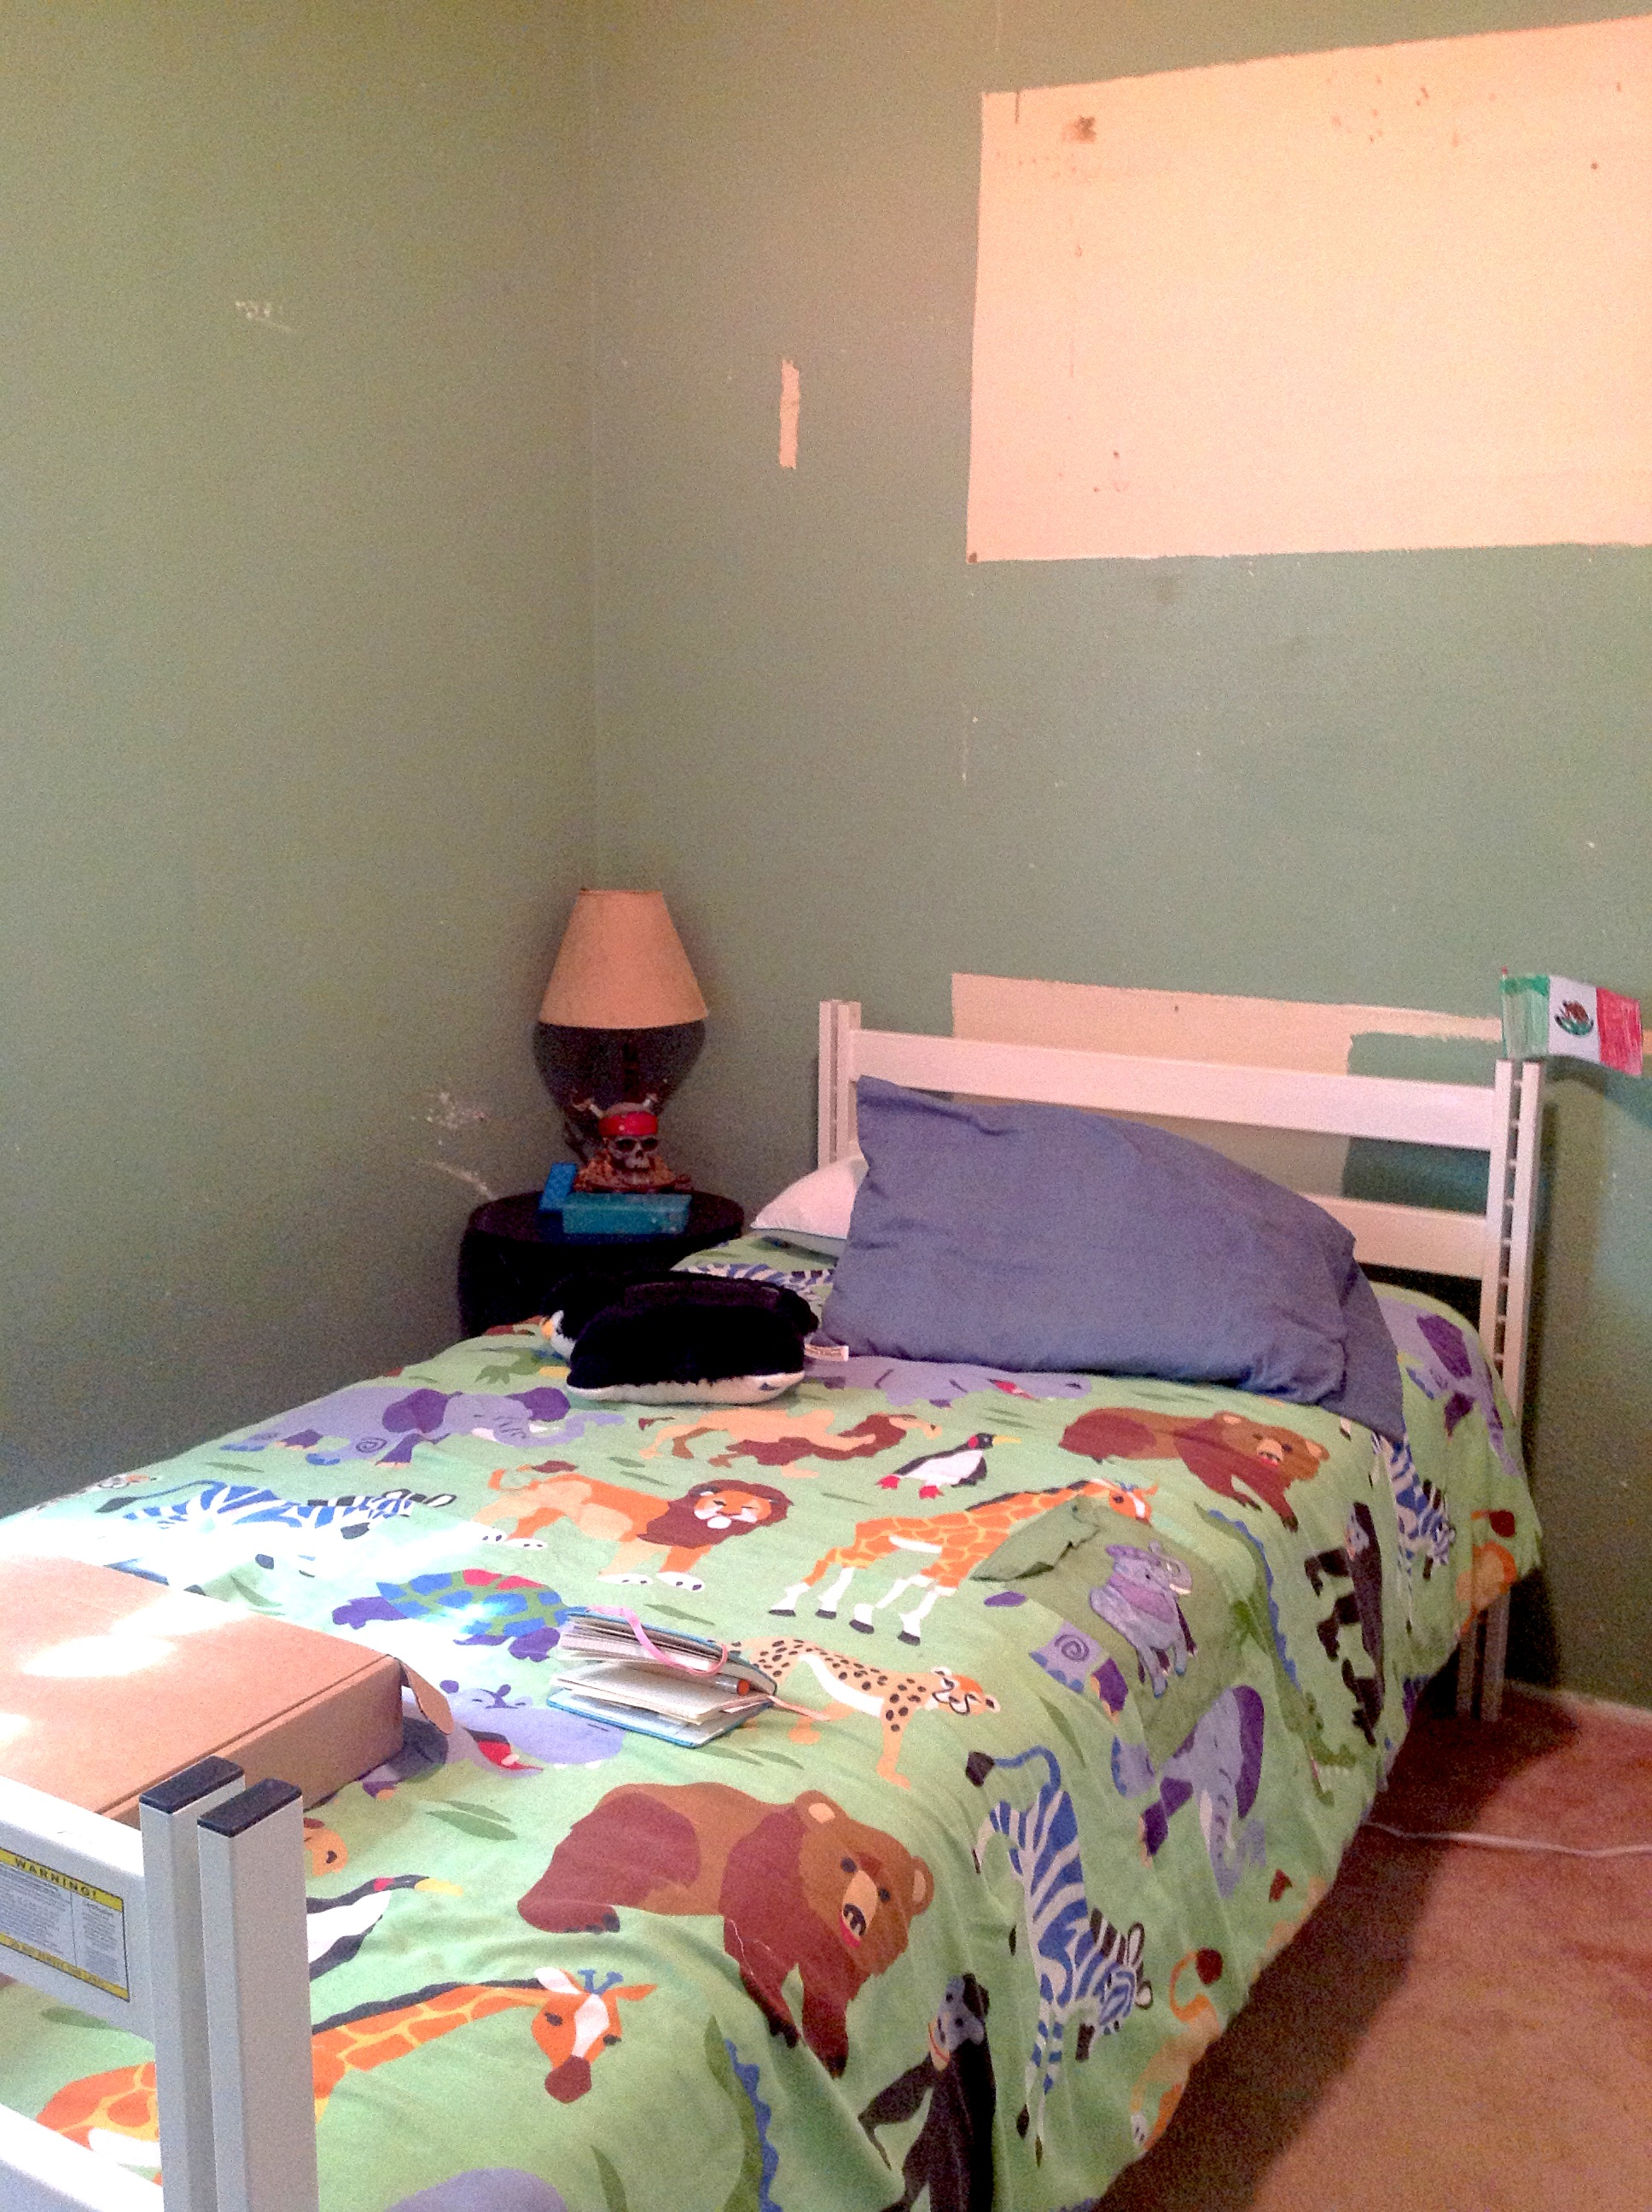 BEFORE: Child's bedroom with unfinished paint